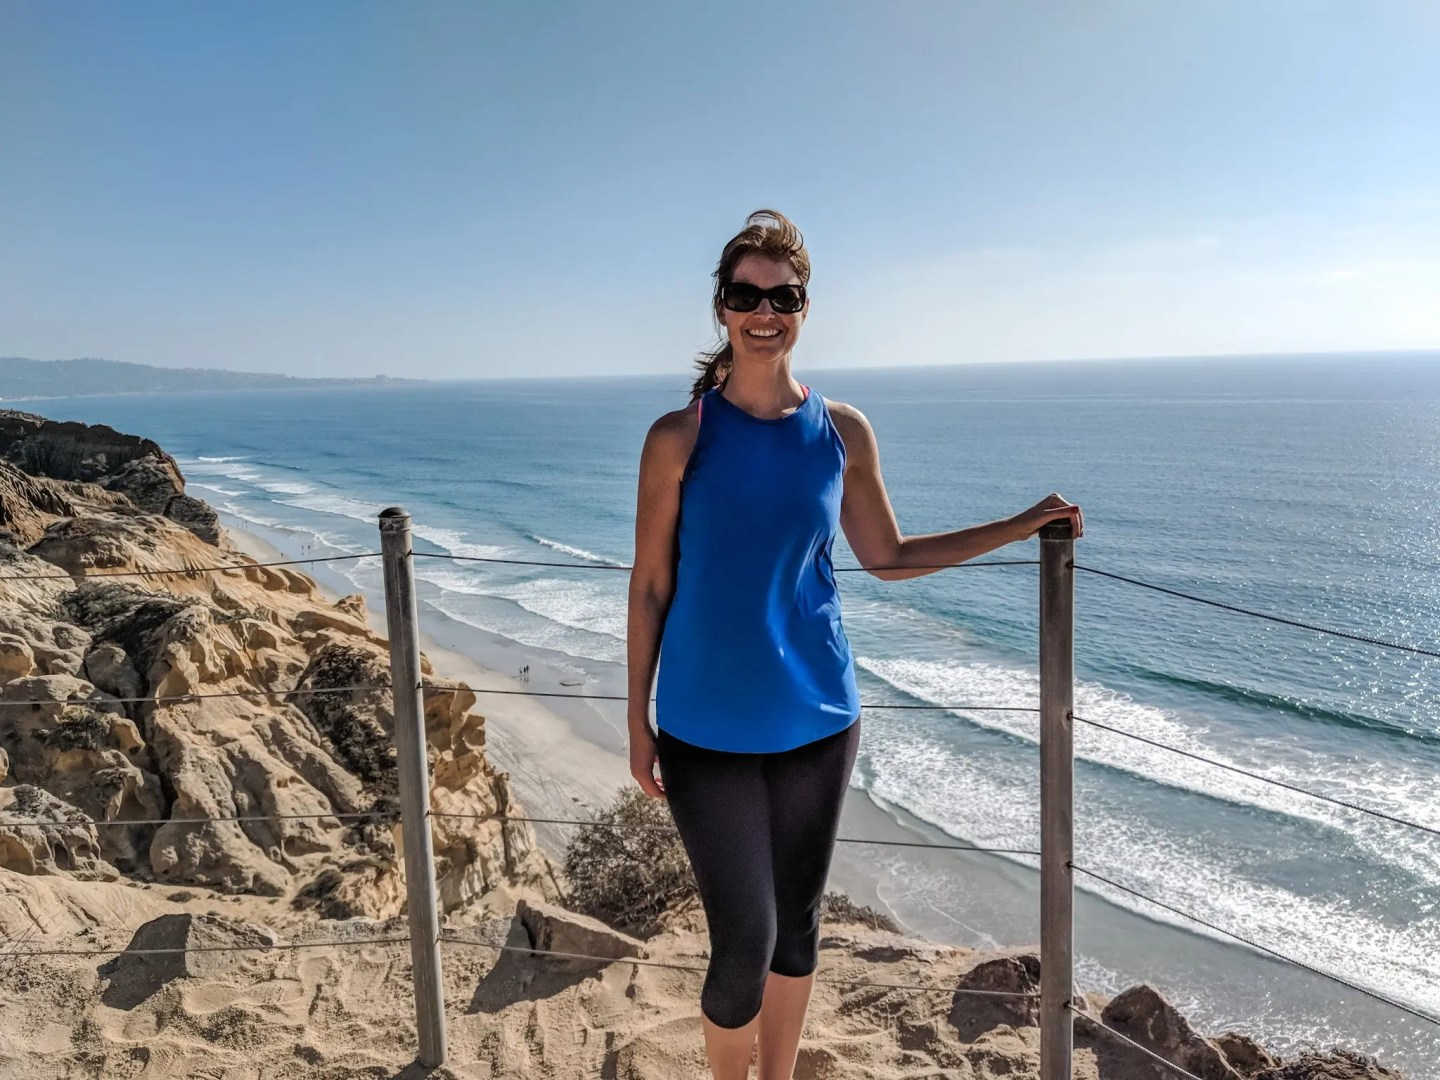 A little windy at Torrey Pines in San Diego, but the breeze and sun felt amazing!